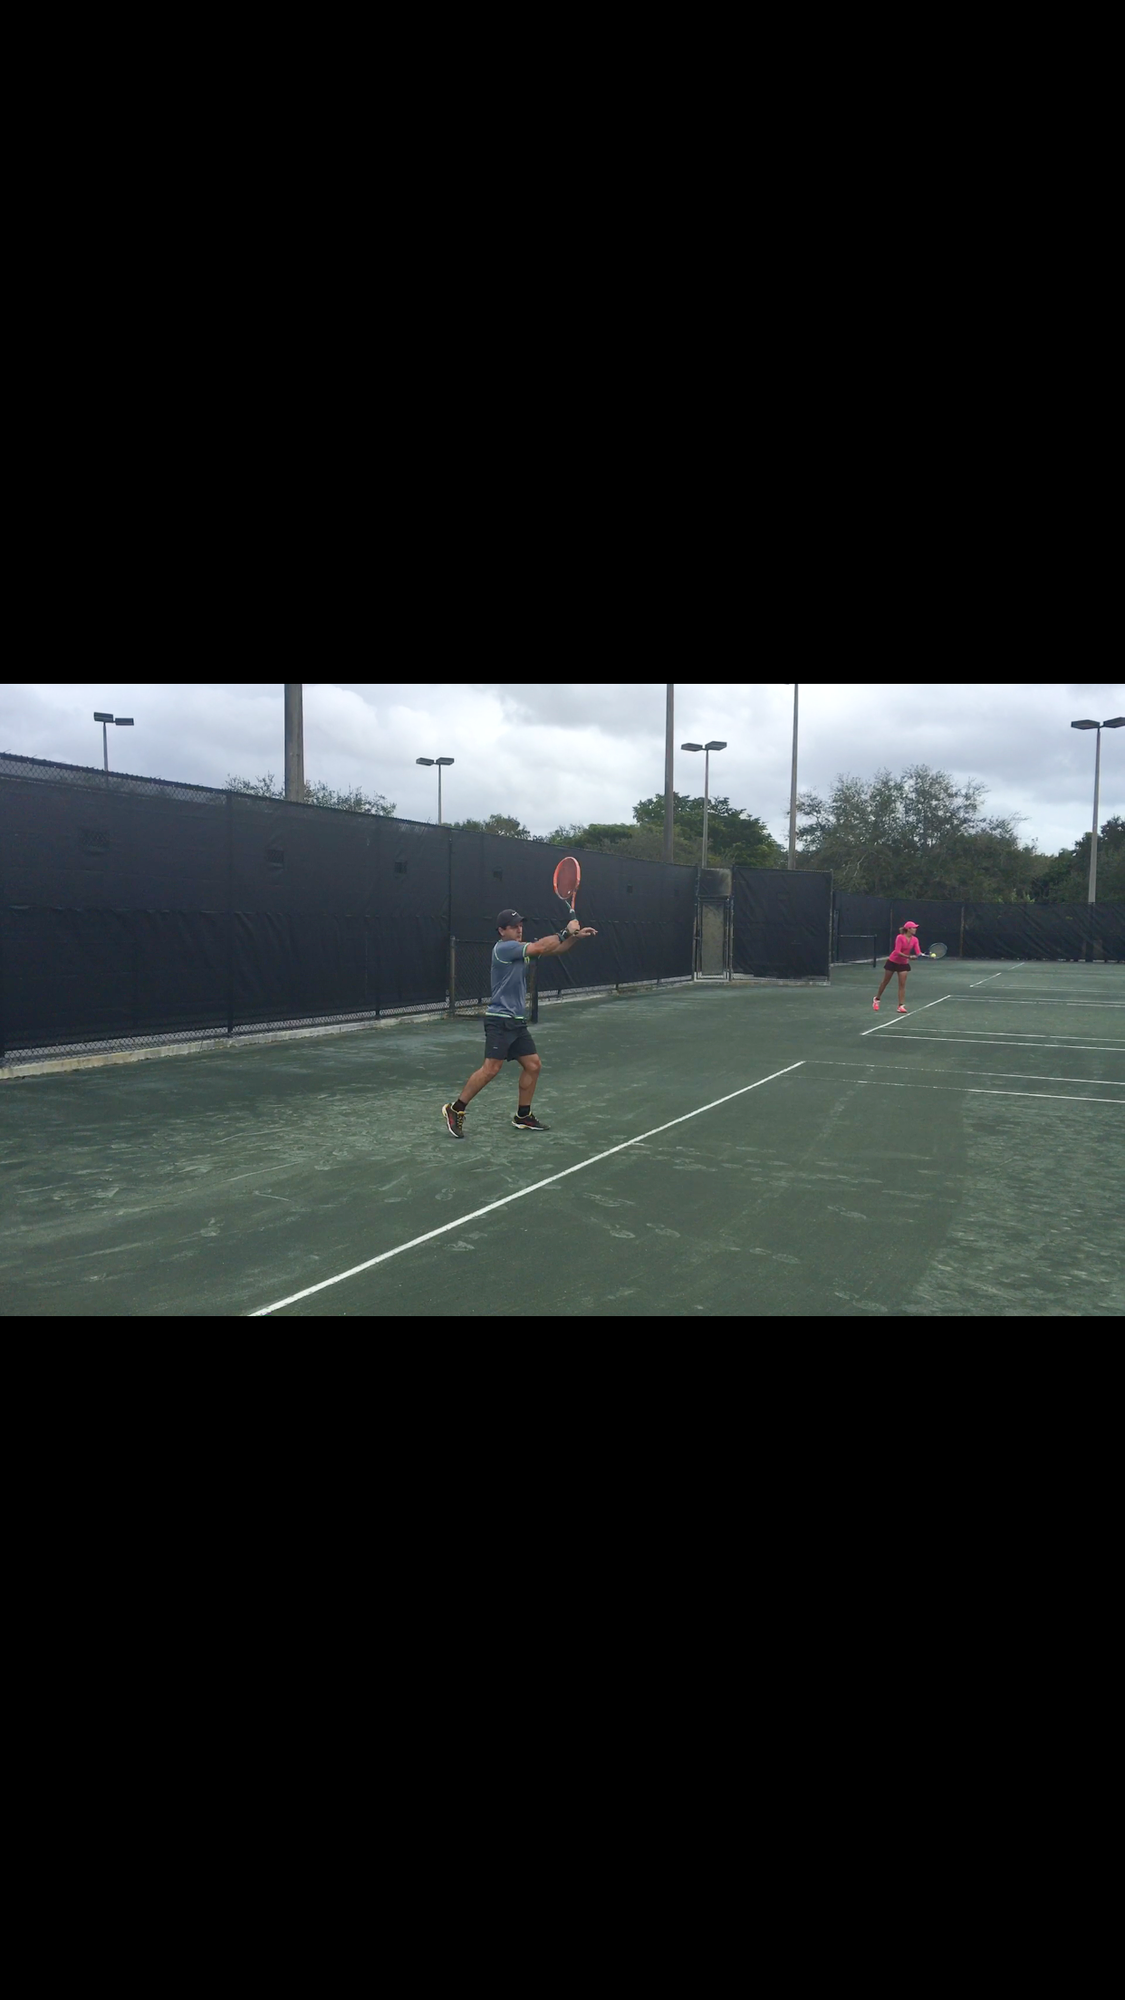 Jorge R. teaches tennis lessons in Miami, FL